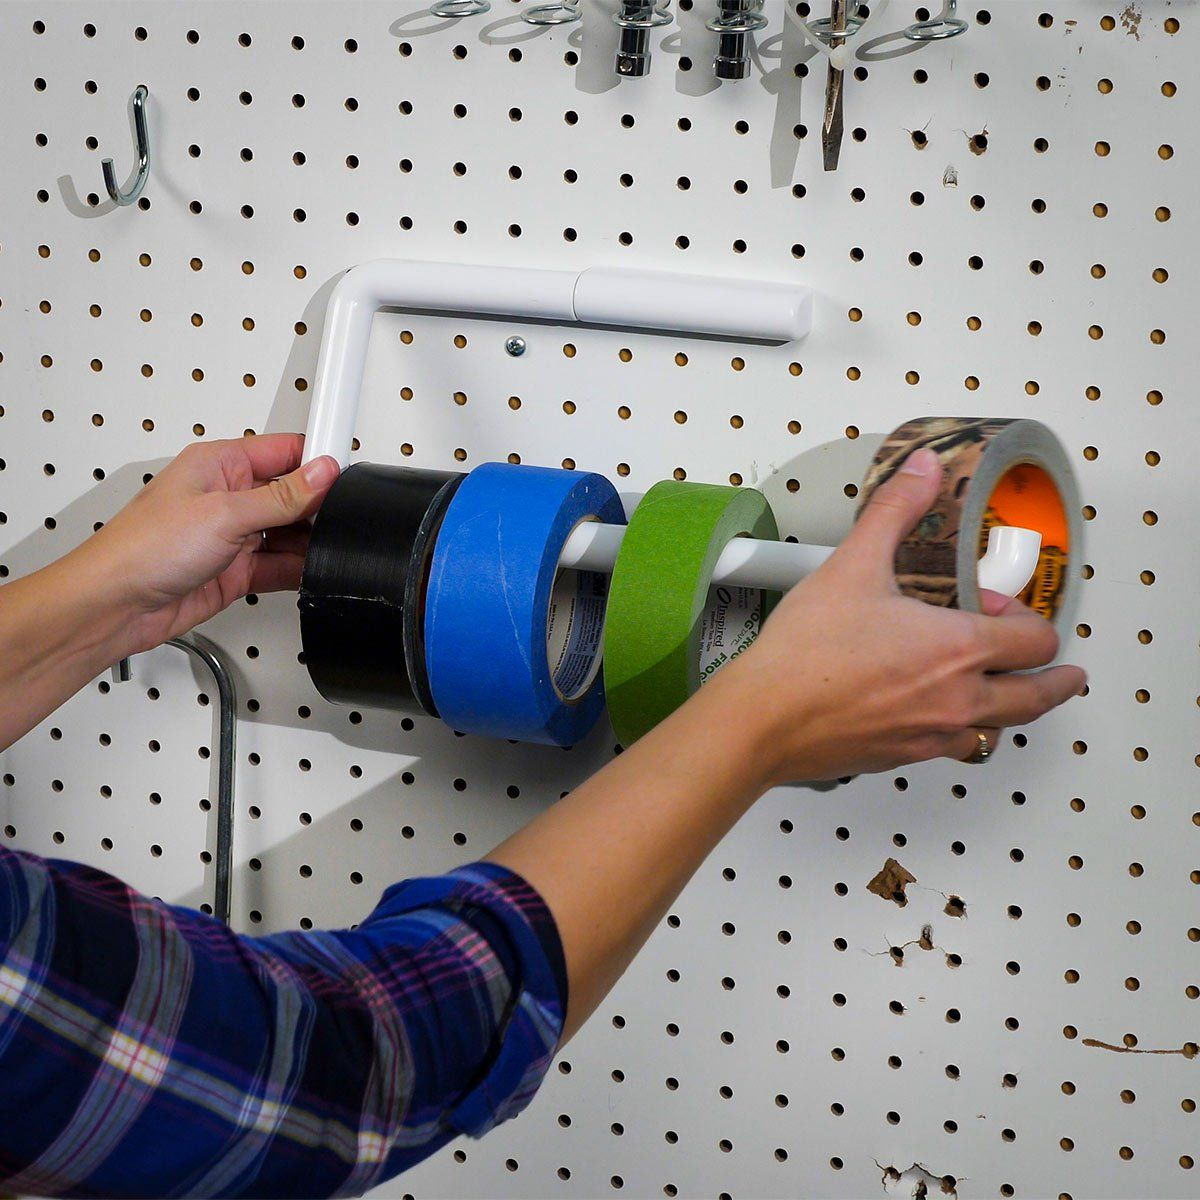 Rather than take up space in a drawer or cabinet for storing rolls of tape, mount an old paper towel dispenser to your wall or pegboard. It can hold several rolls of duct tape, painter's tape, etc., within easy reach. #familyhandymanstuff